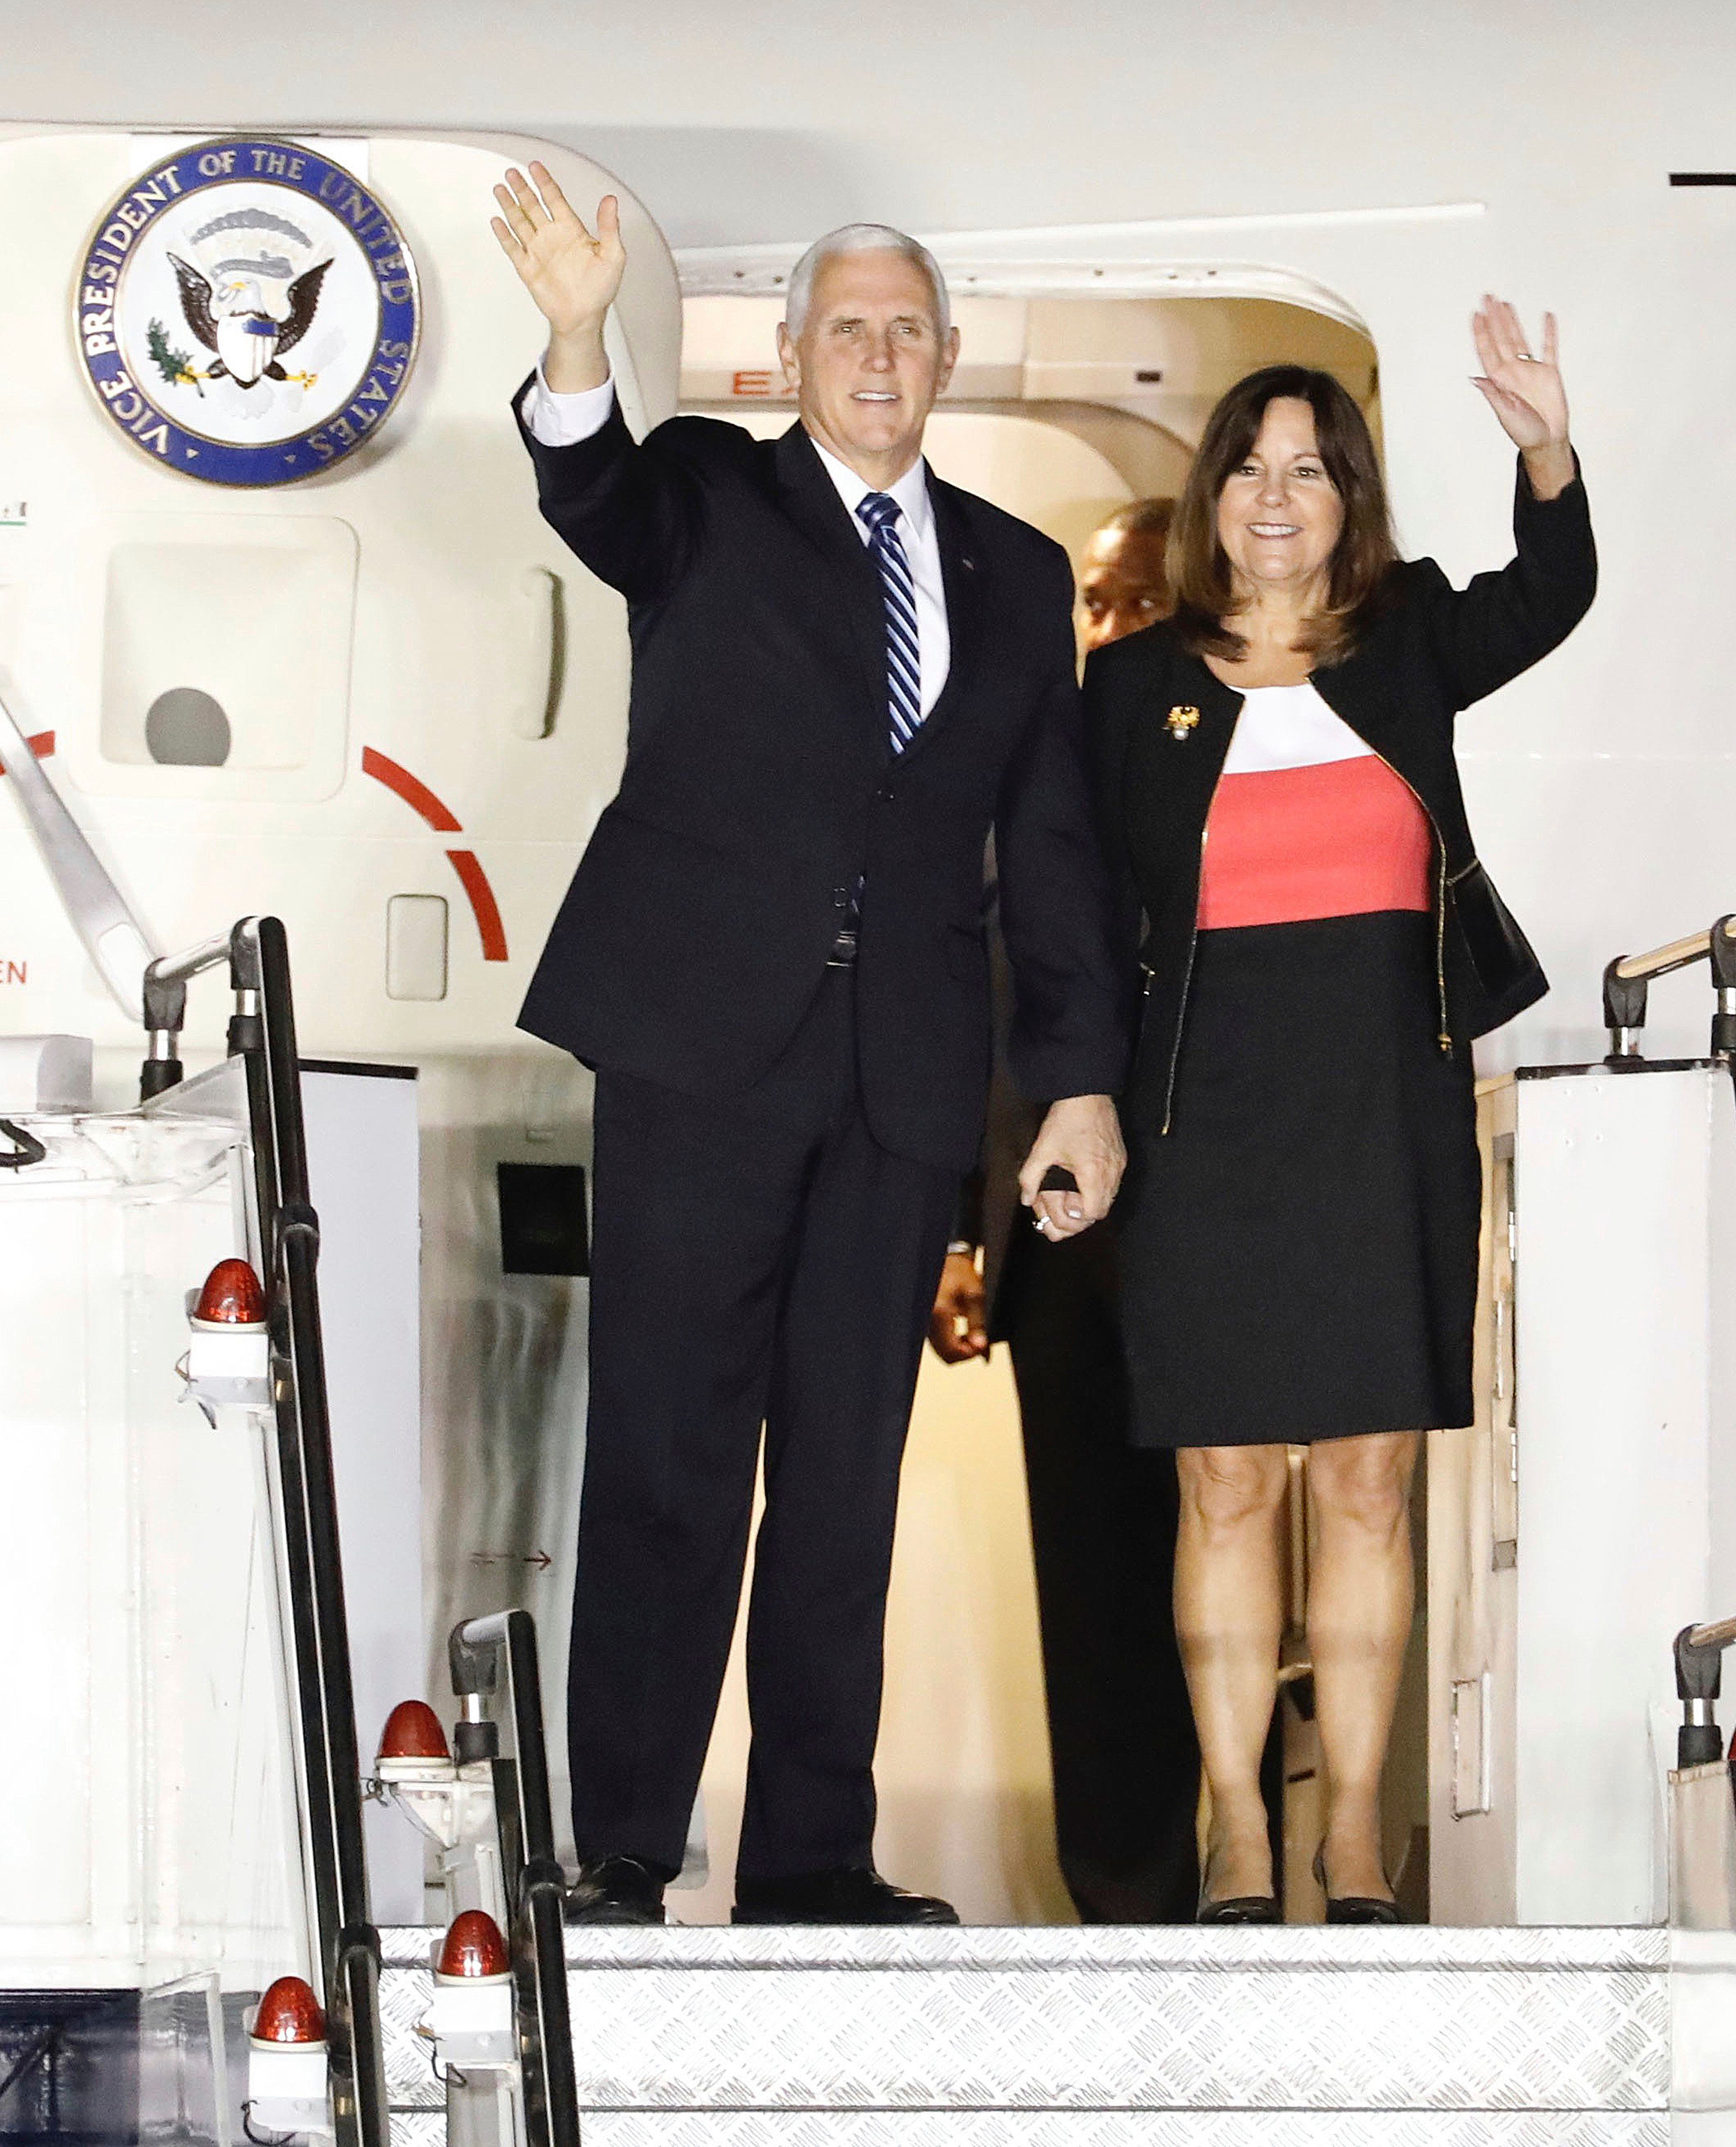 Westlake Legal Group 5c3fa1d1240000c100486816 Vice President Mike Pence Defends His Wife For Teaching At An Anti-LGBTQ School